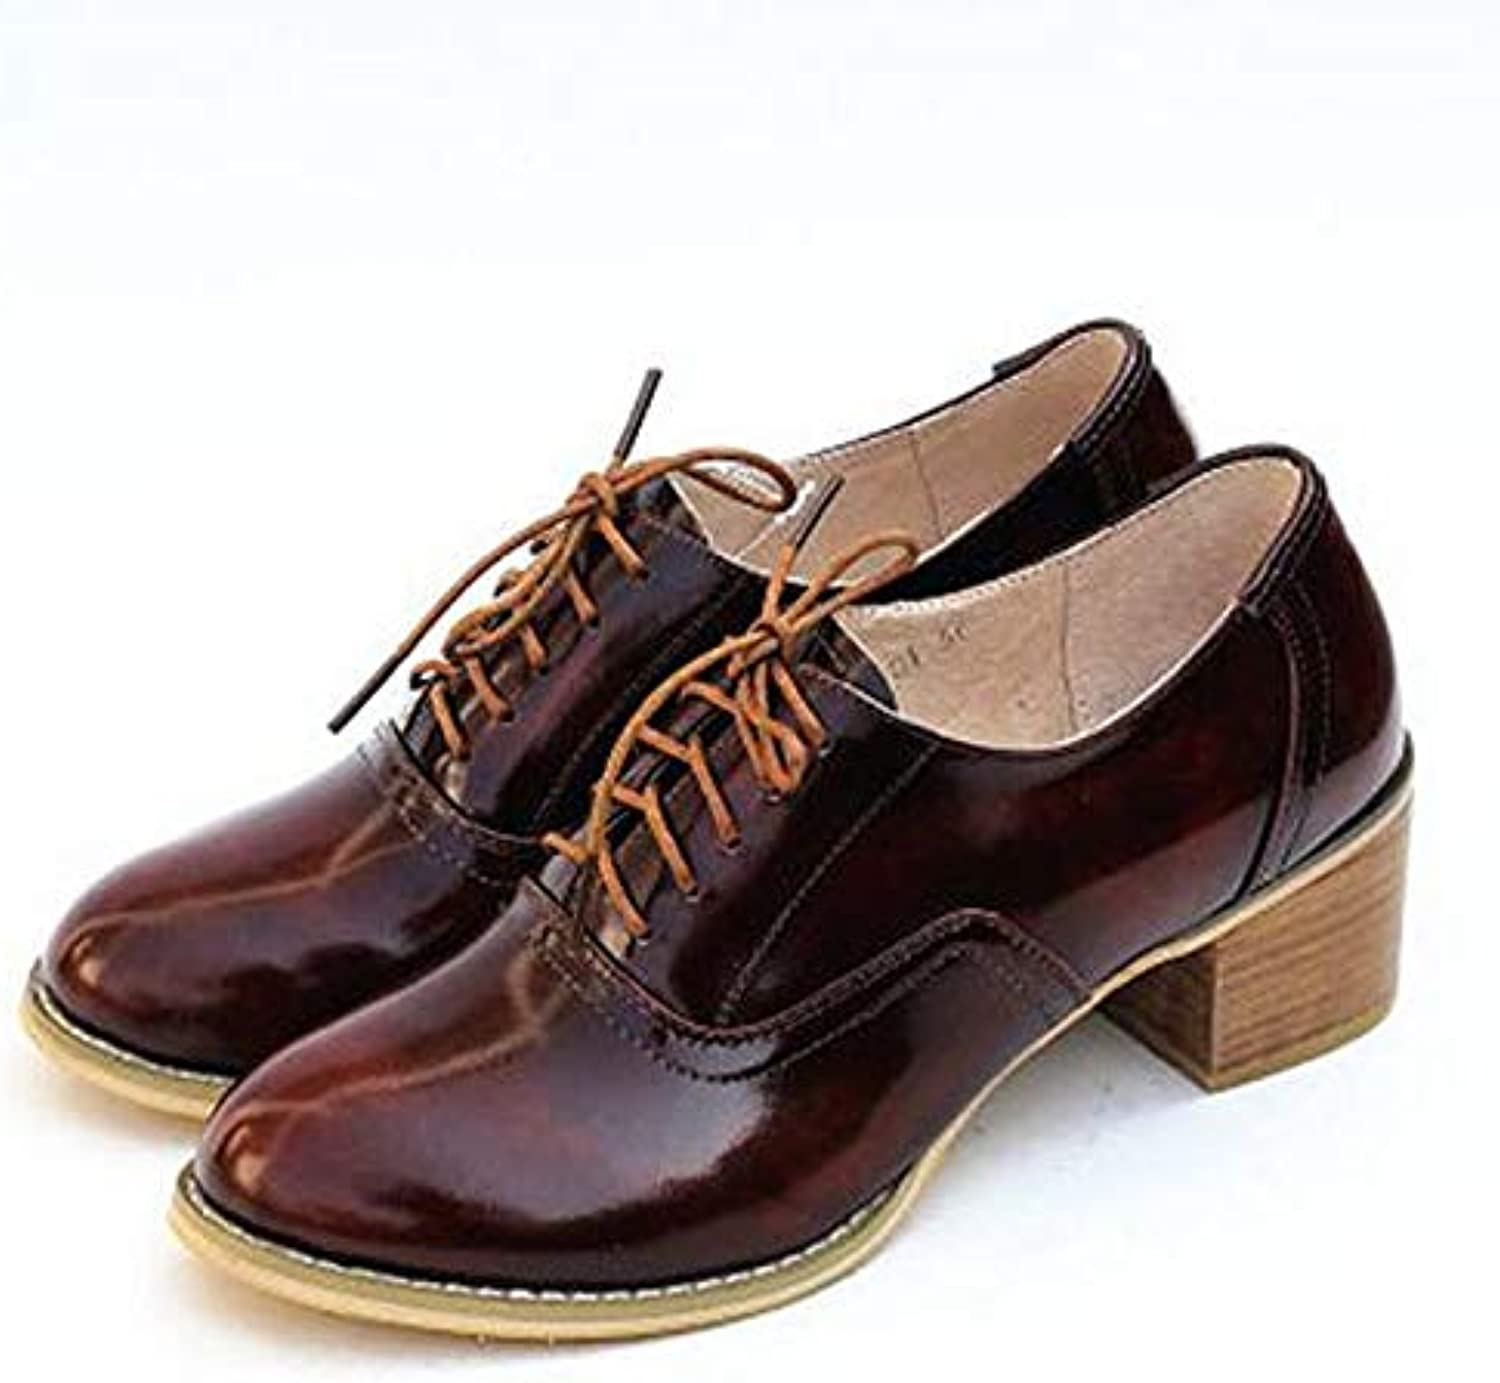 Fay Waters Women's Patent Leather Perforated Lace-up Oxfords Brogue Wingtip Mid Heel Saddle shoes for Ladies